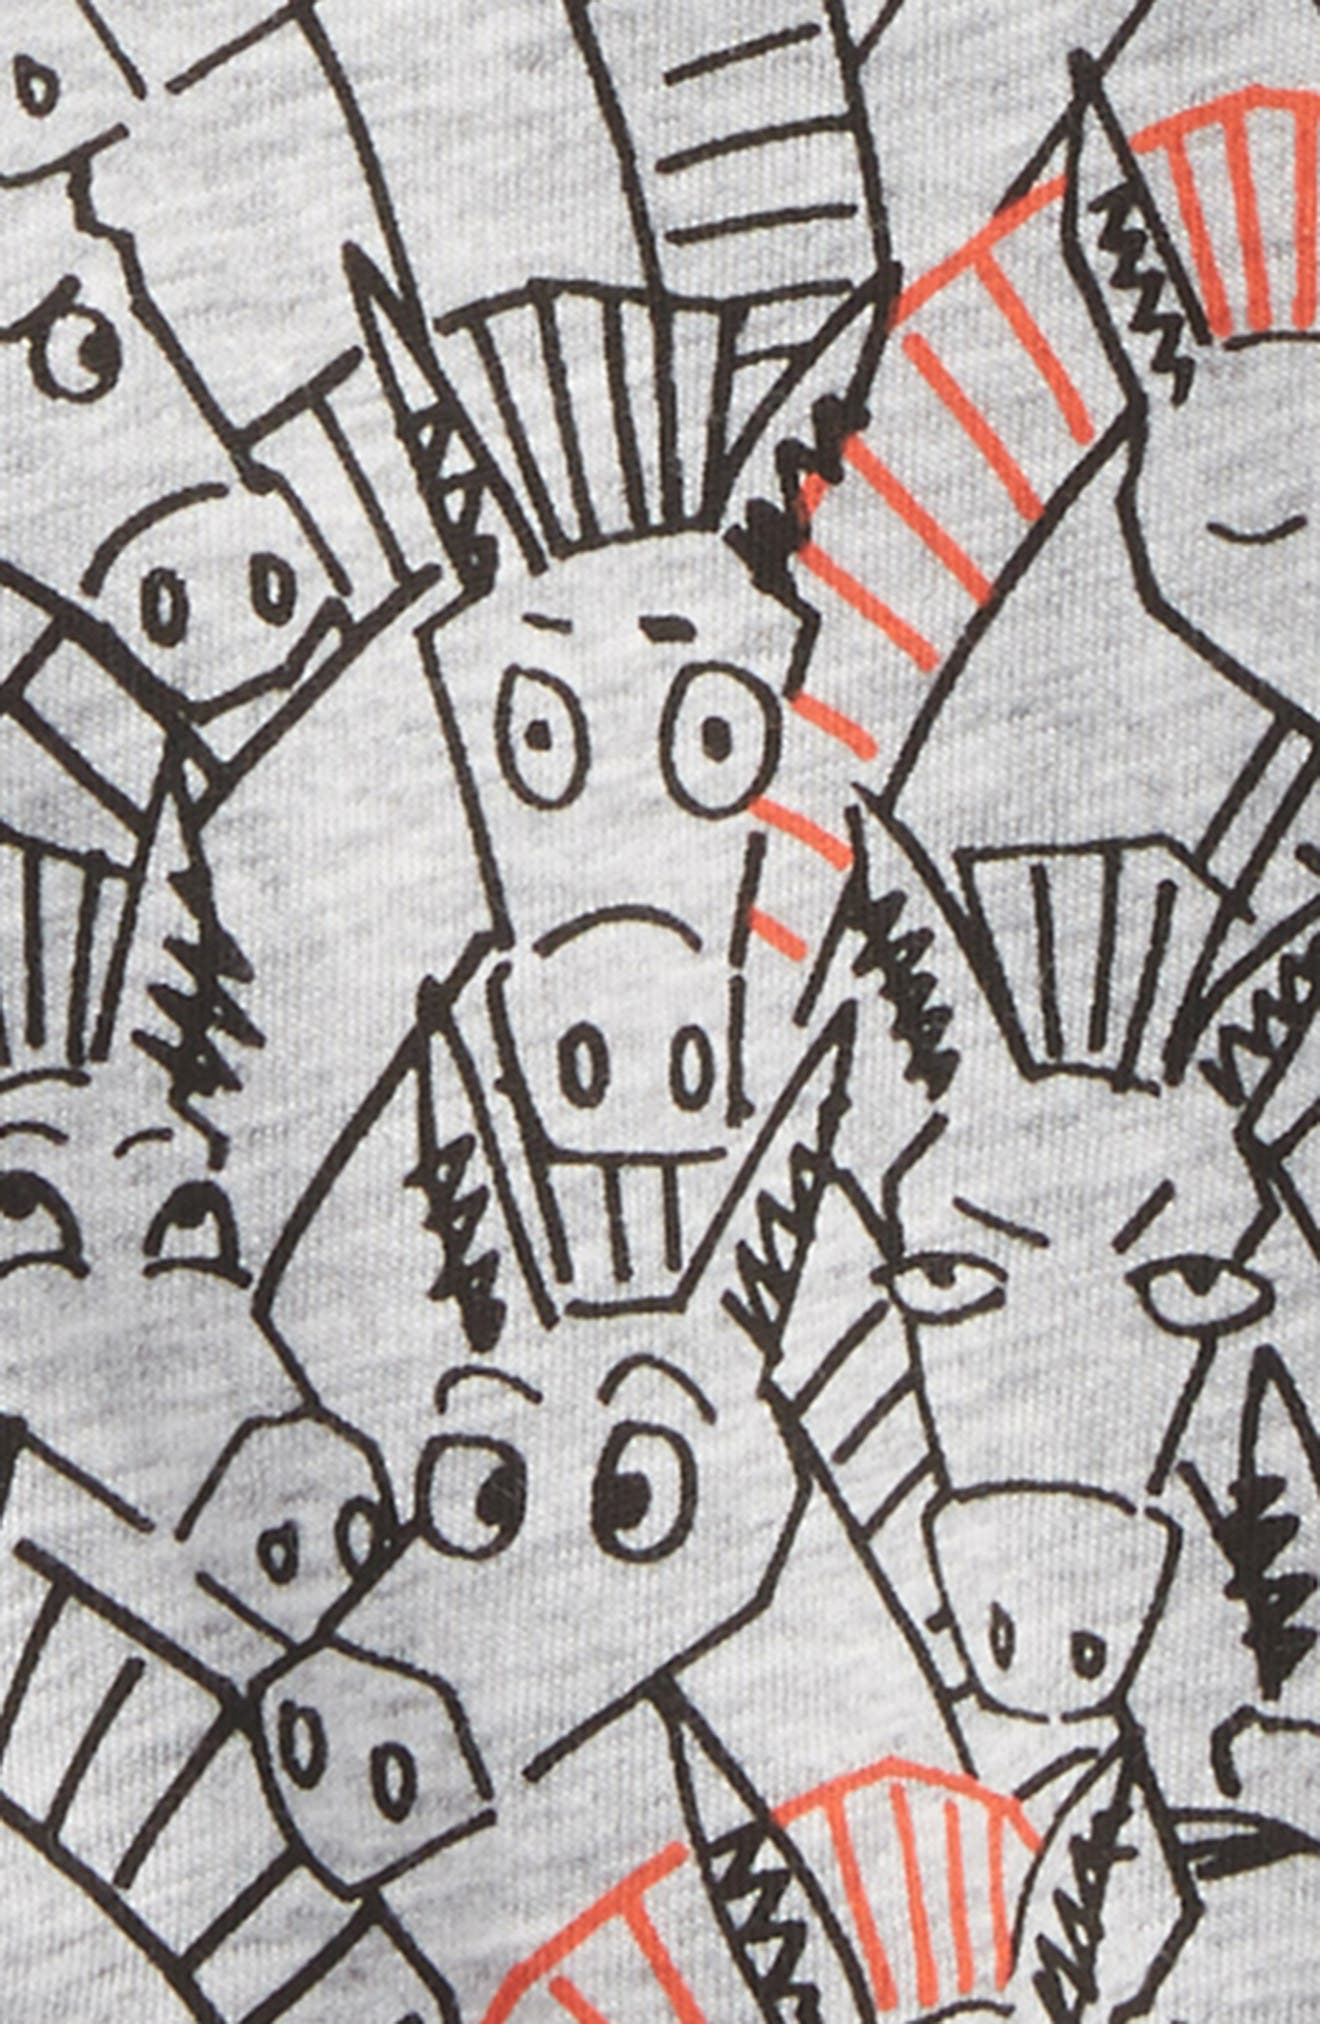 Chuckle All Over Donkey Print Tee,                             Alternate thumbnail 2, color,                             020